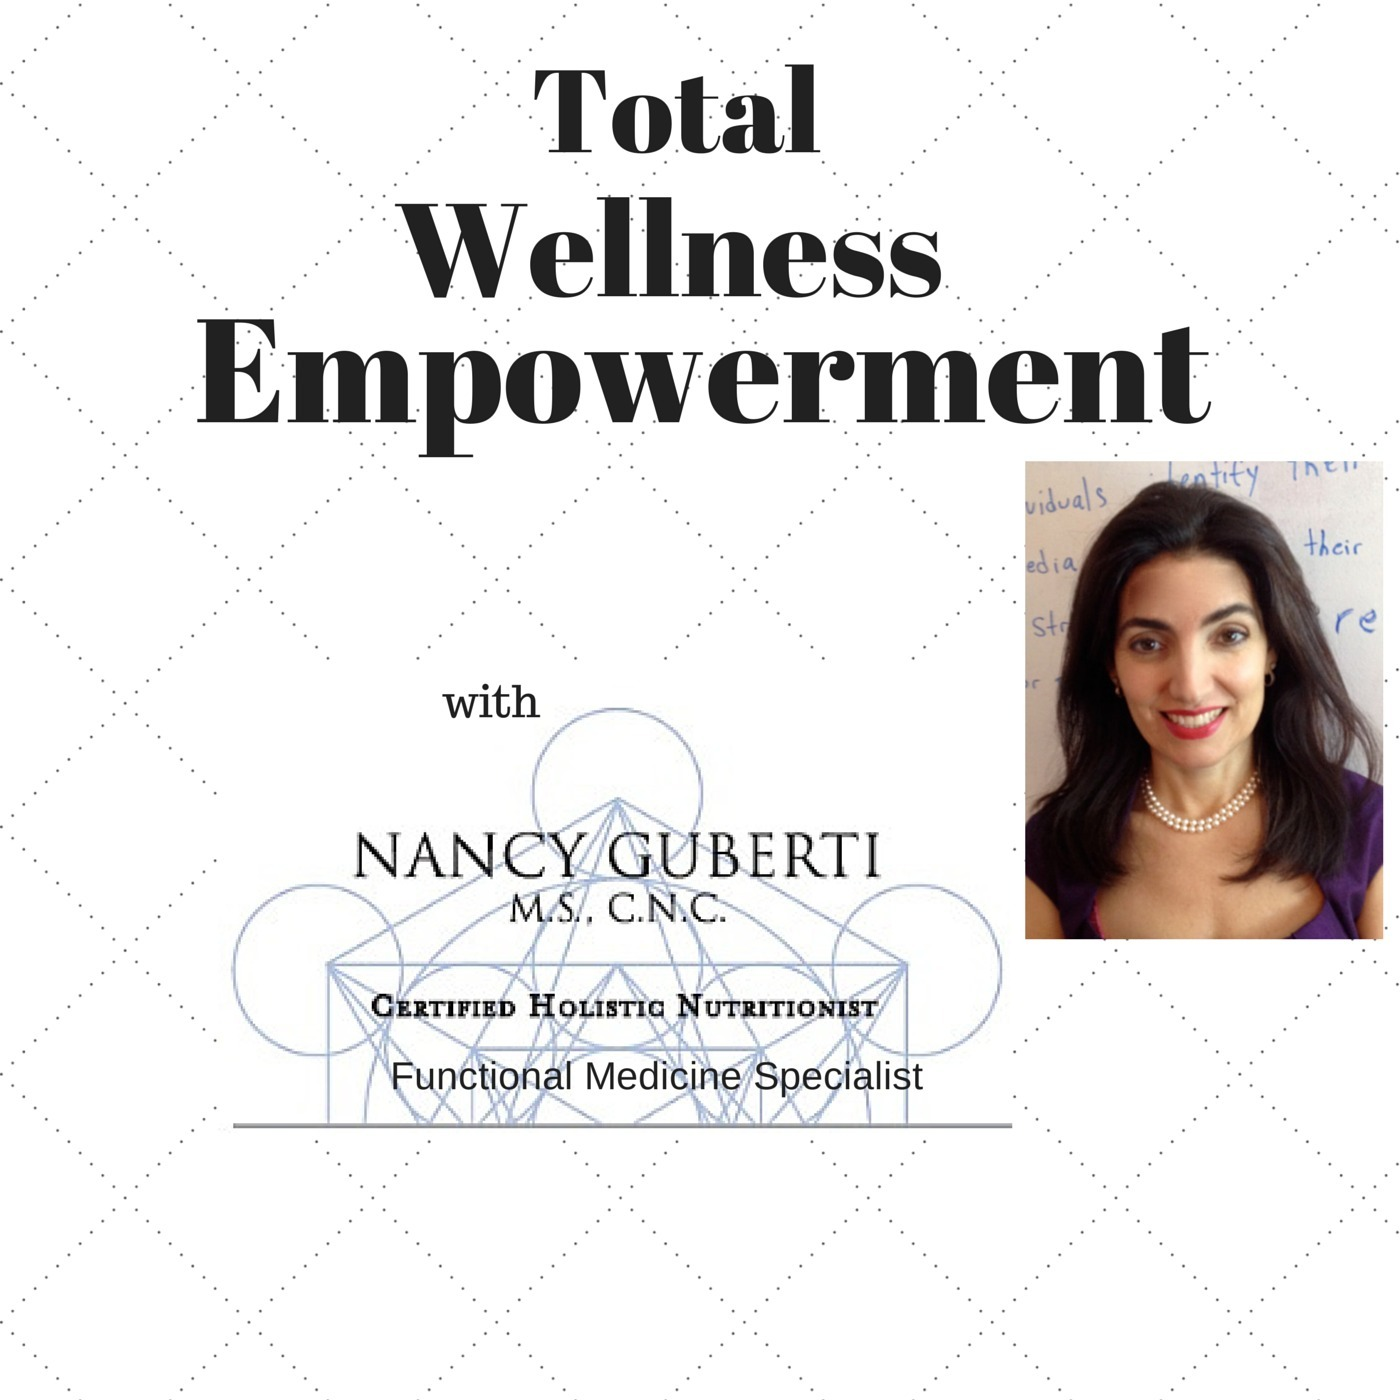 Total Wellness Empowerment with Nancy Guberti